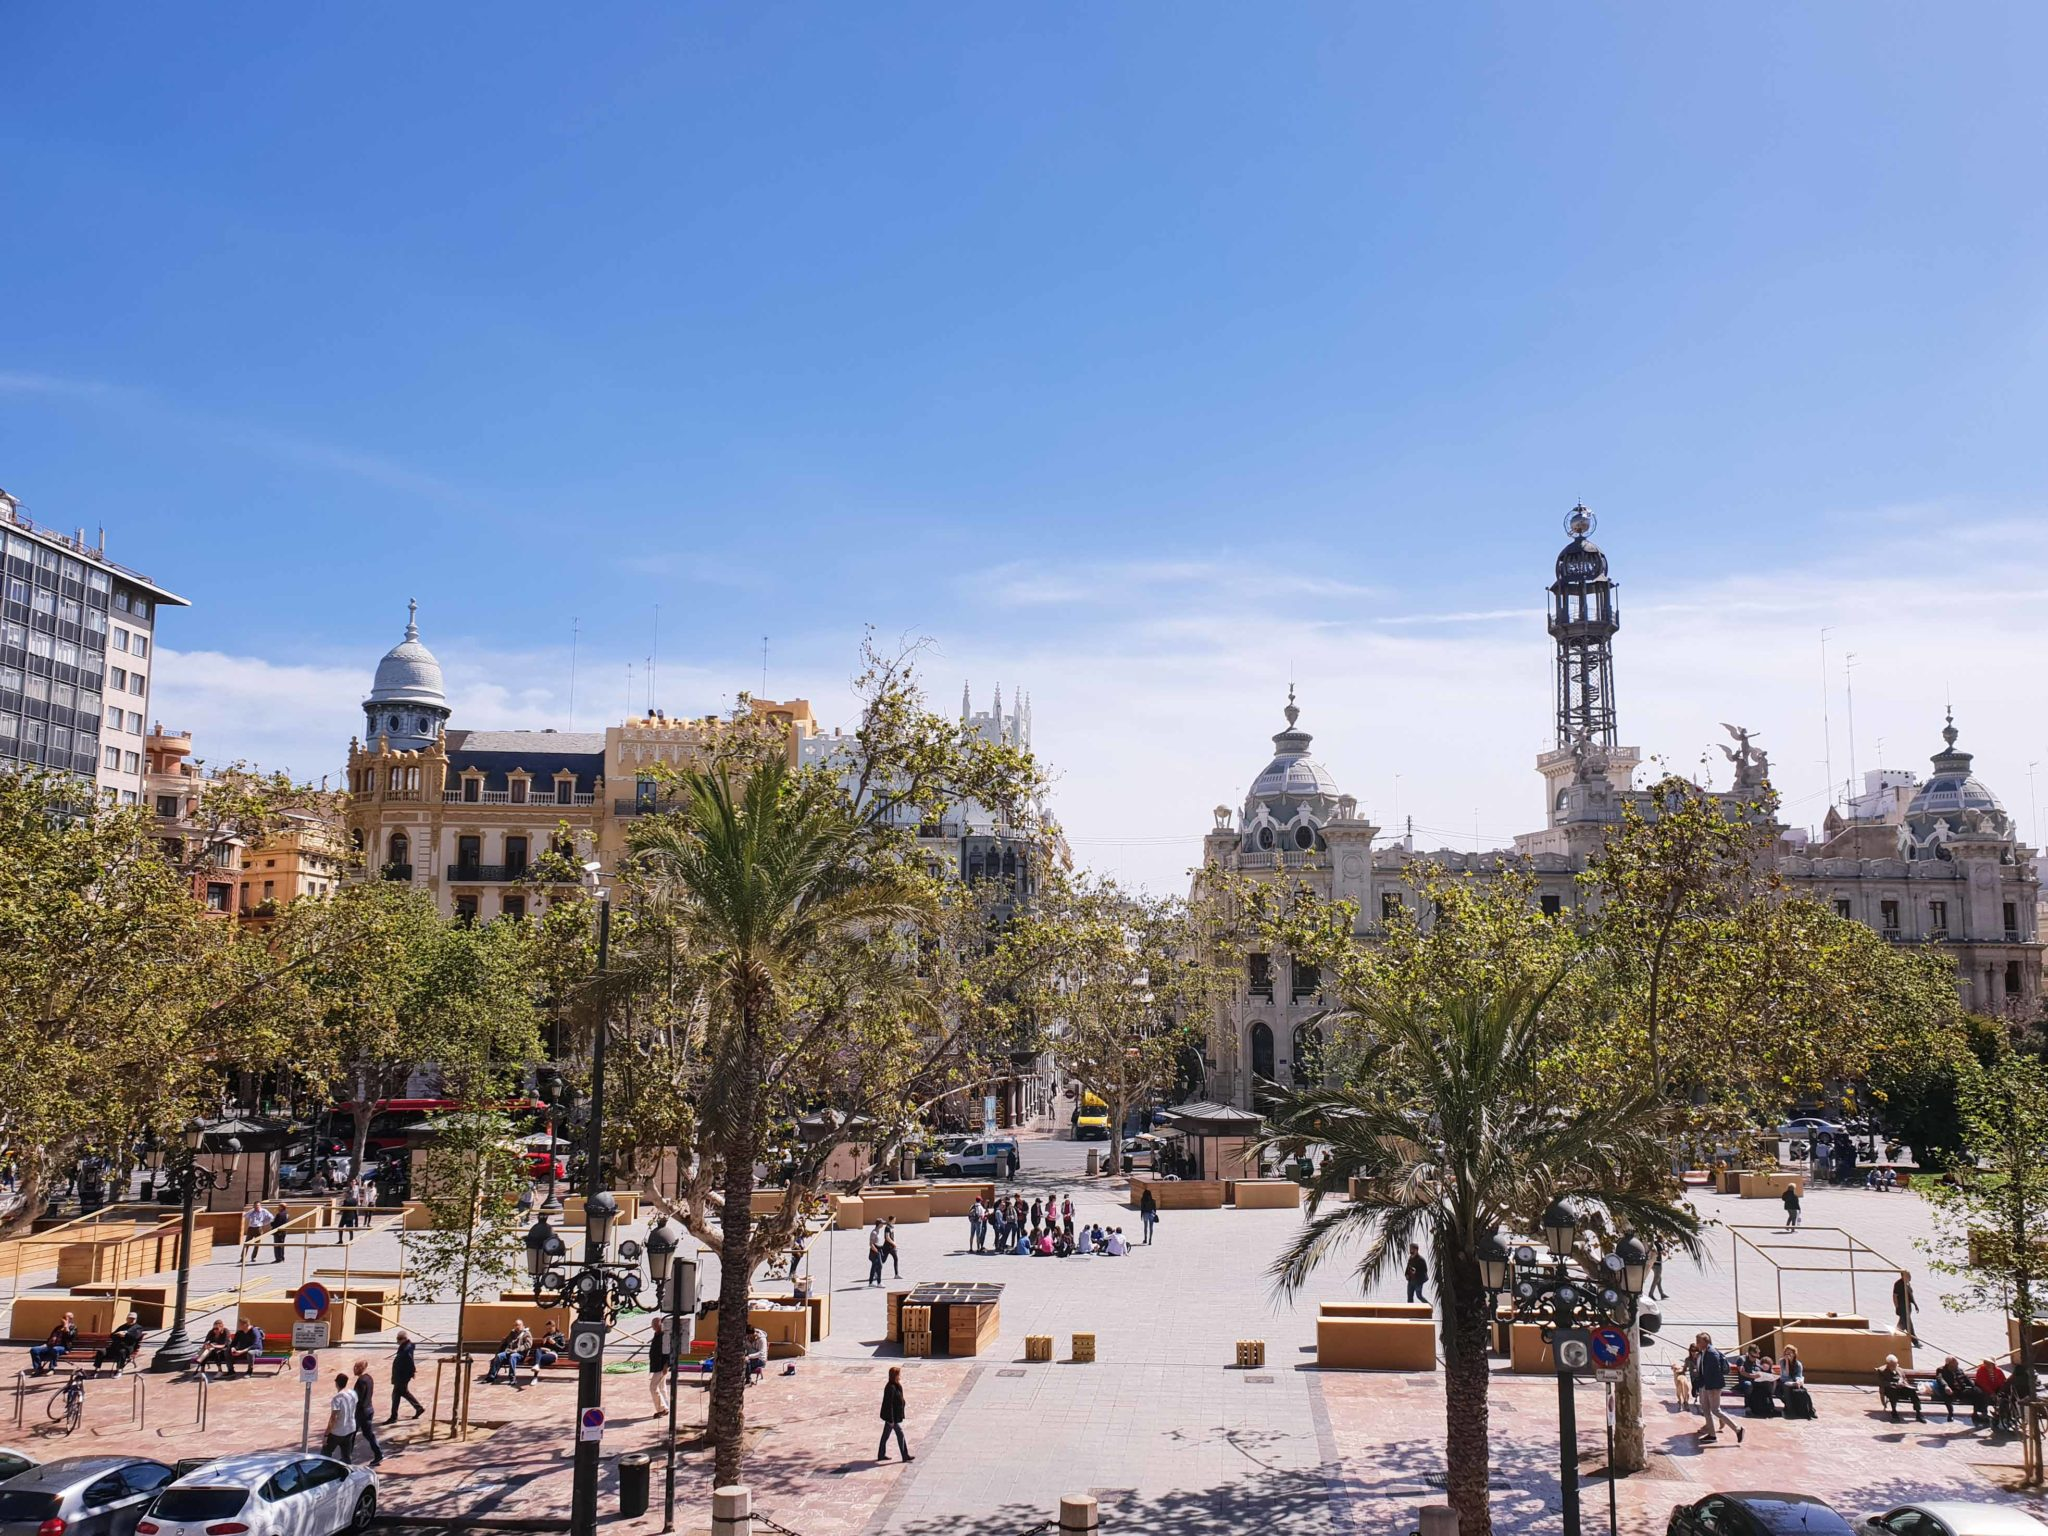 Valencia travel guide by Lina from Bulgarian lifestyle blog Quite a Looker